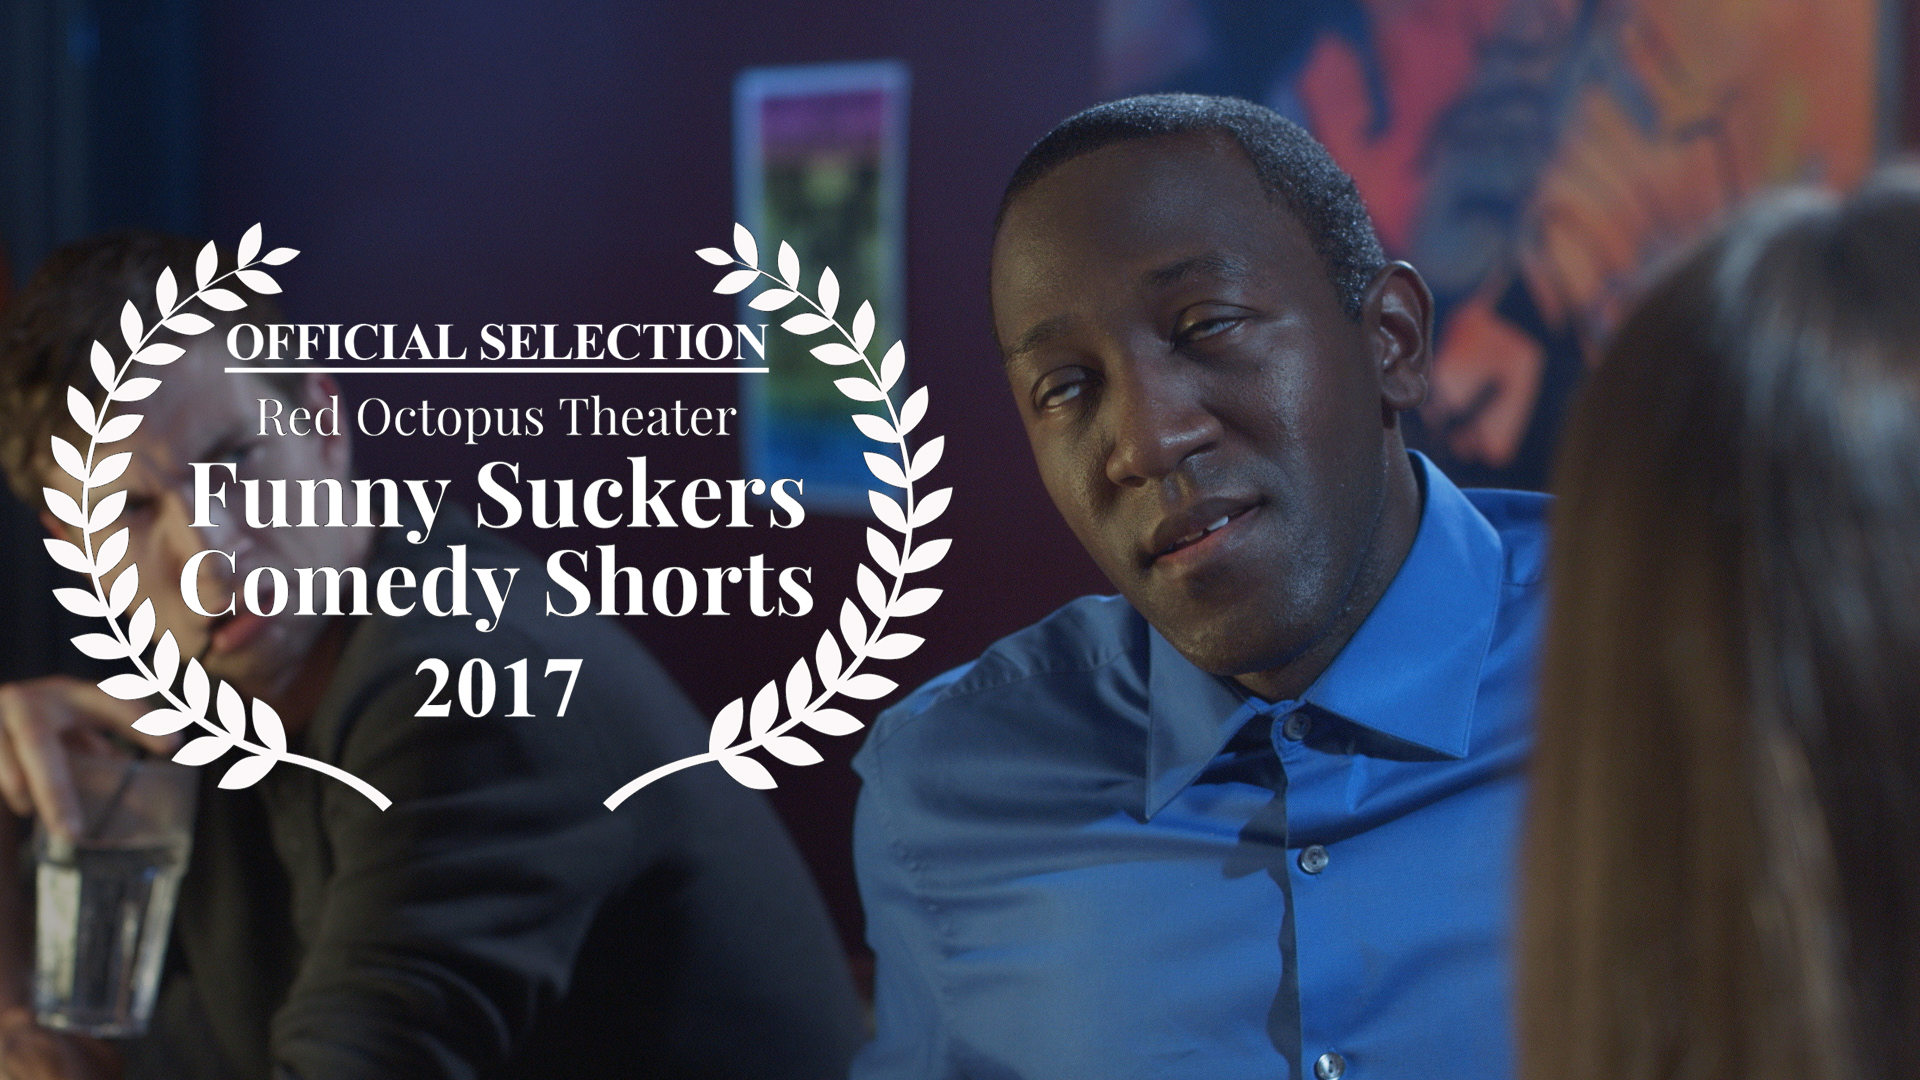 Chris Fisher, Jamaal Eversley and Samantha Webb in Geena Matuson's short 'Depends,' Official Selection of Red Octopus Theater's 'Funny Suckers Comedy Shorts.' See more from The Girl Mirage #thegirlmirage @geenamatuson.